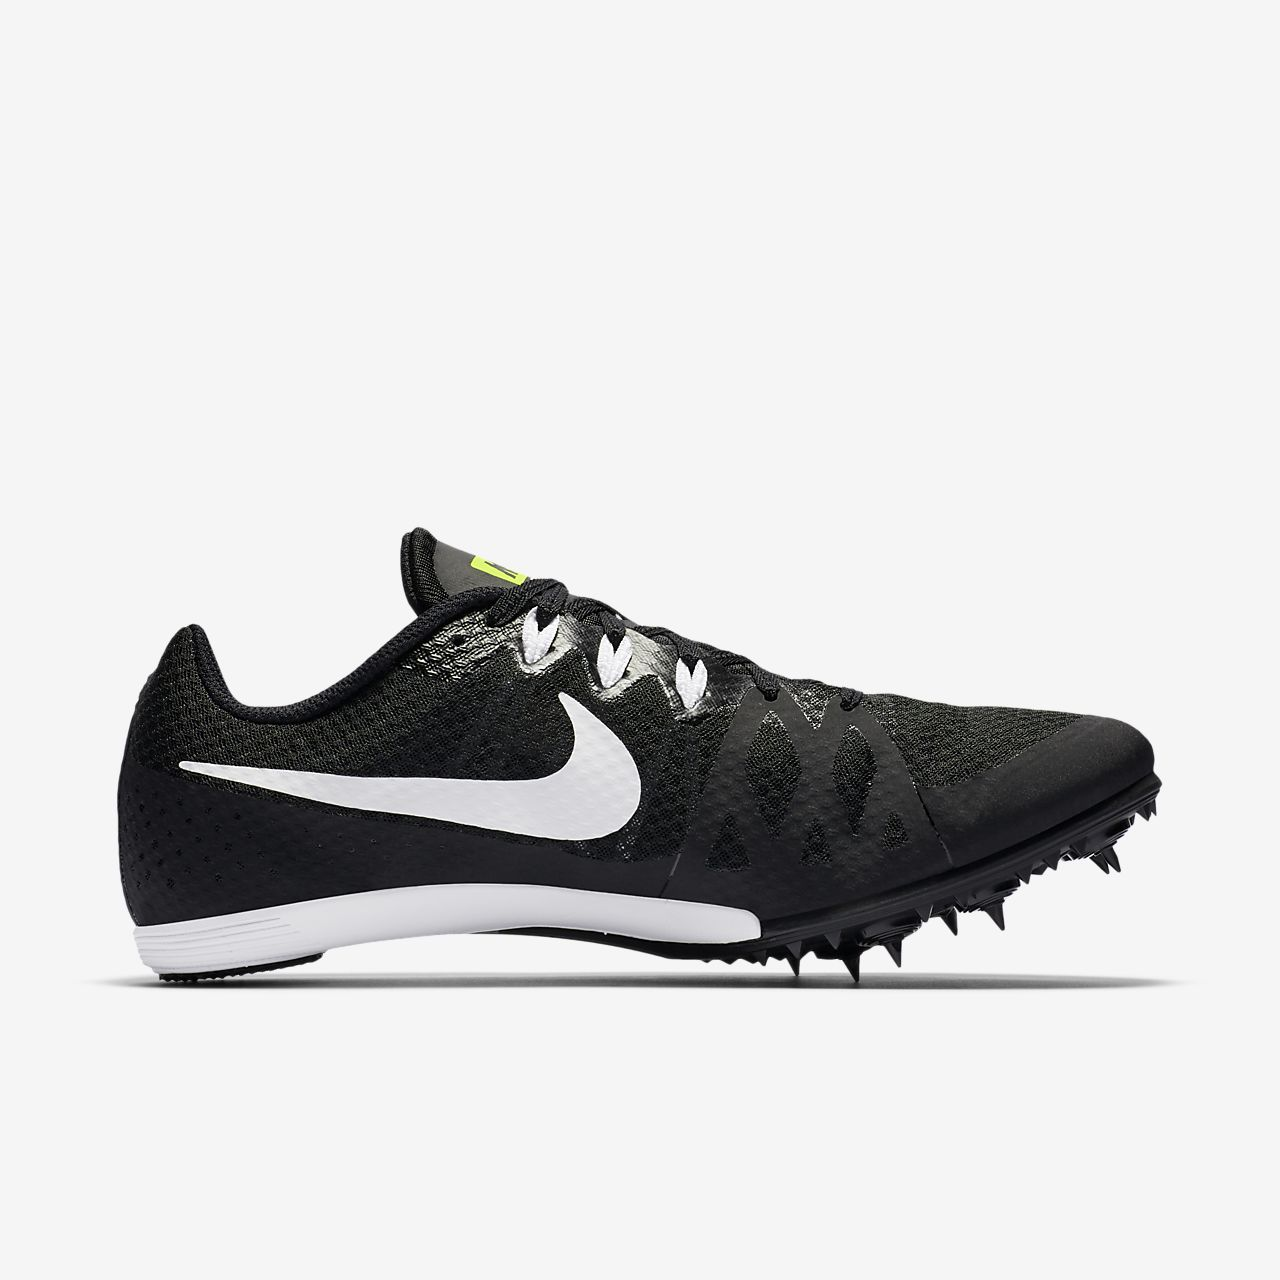 sports shoes 7f73f 214b6 ... Nike Zoom Rival M 8 Unisex Distance Spike